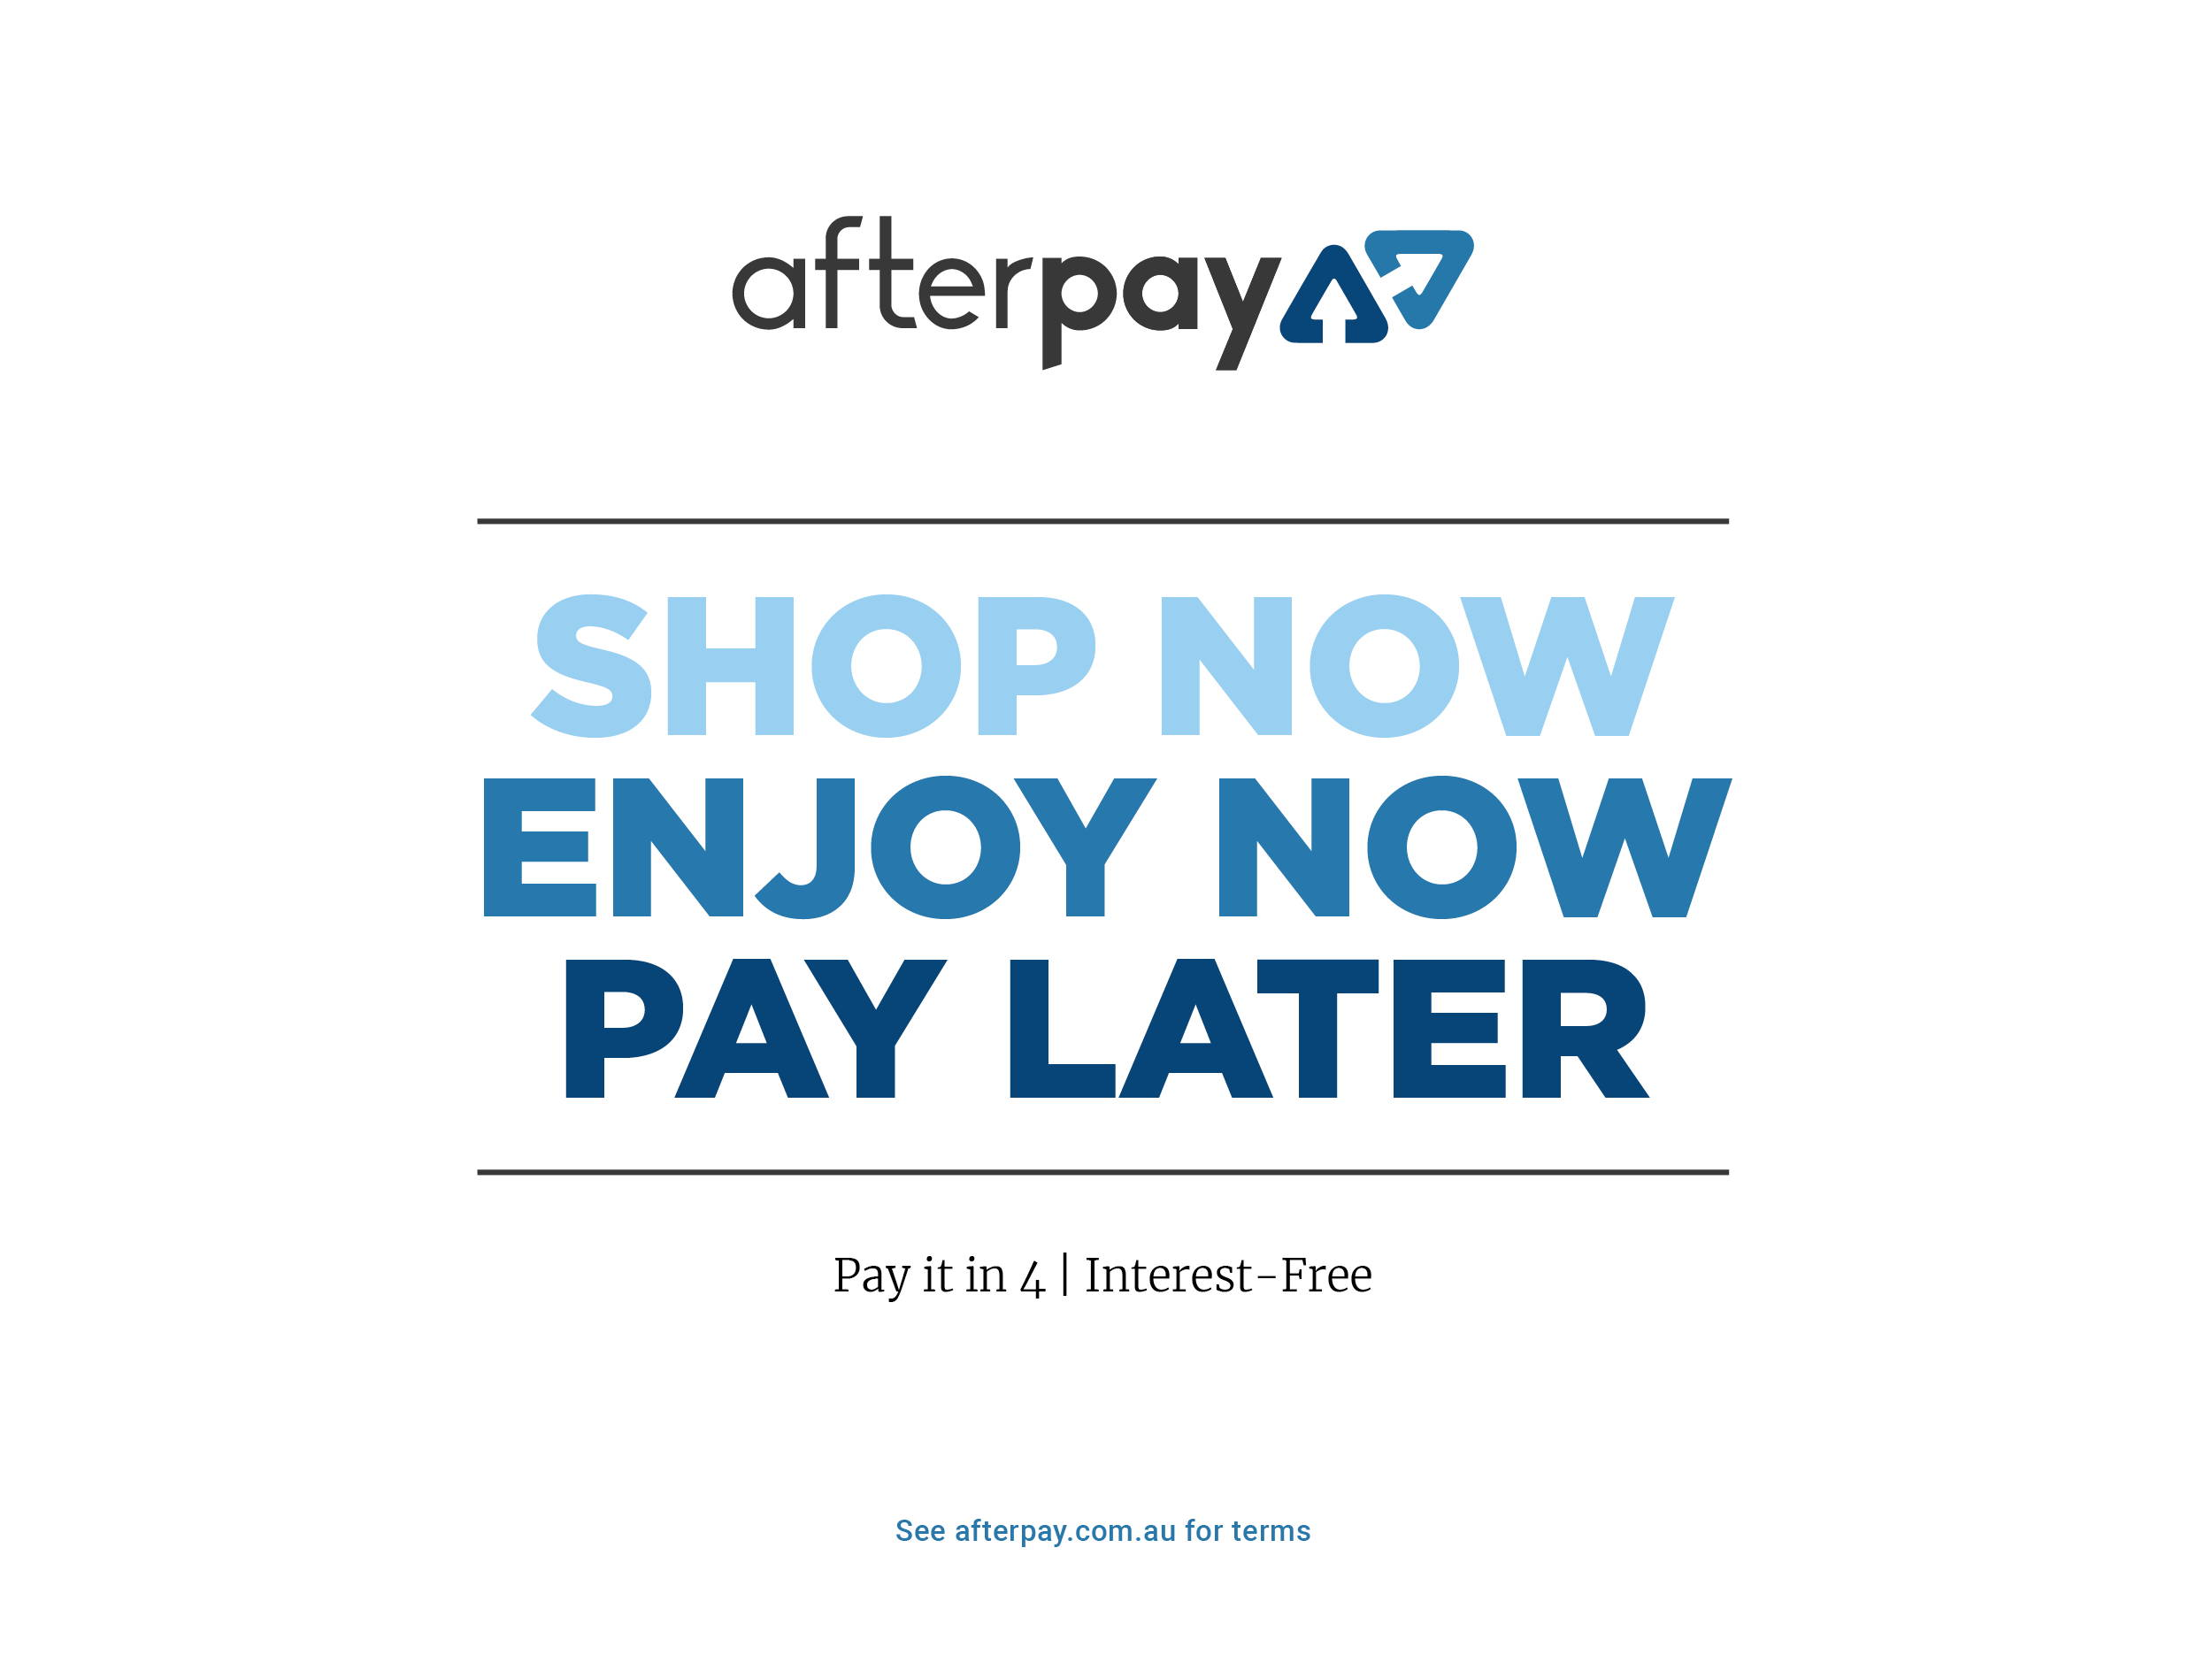 Afterpay, Shop now, Pay Later